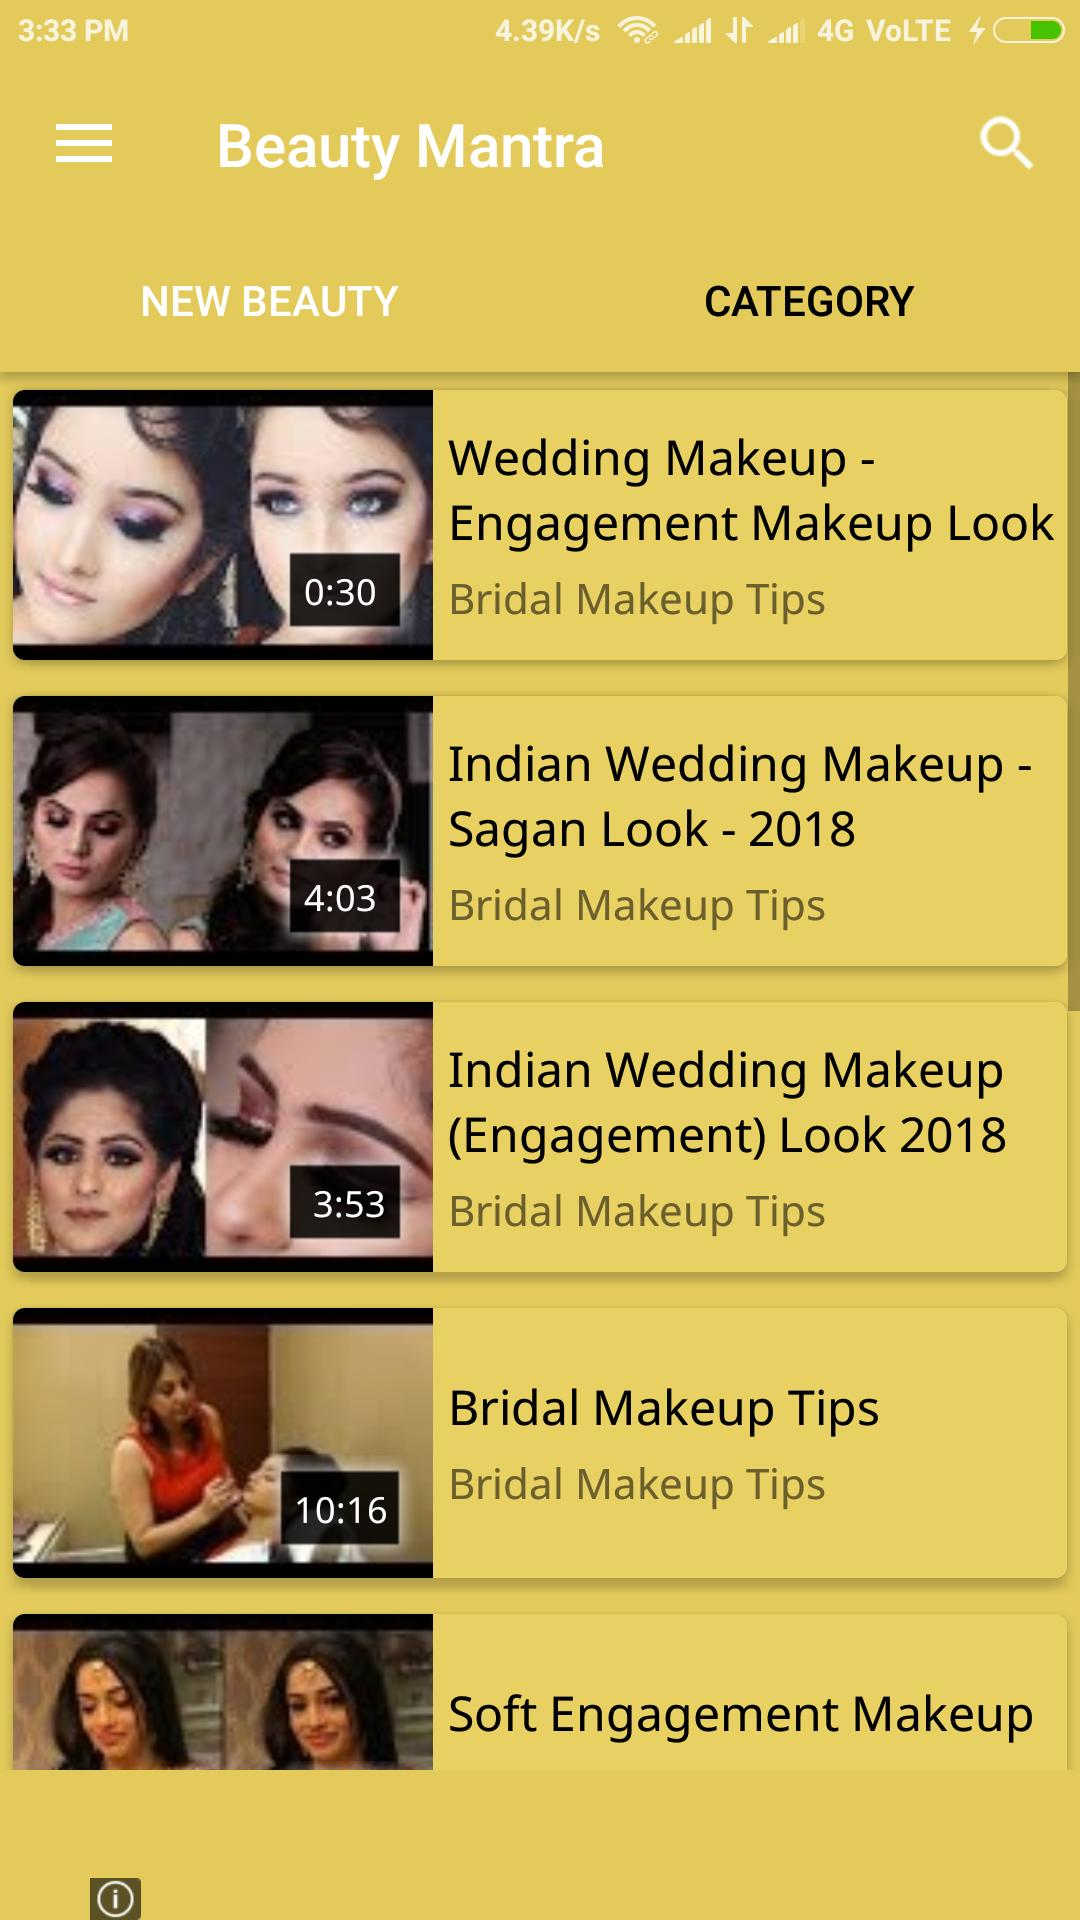 Beauty Mantra for Android - APK Download